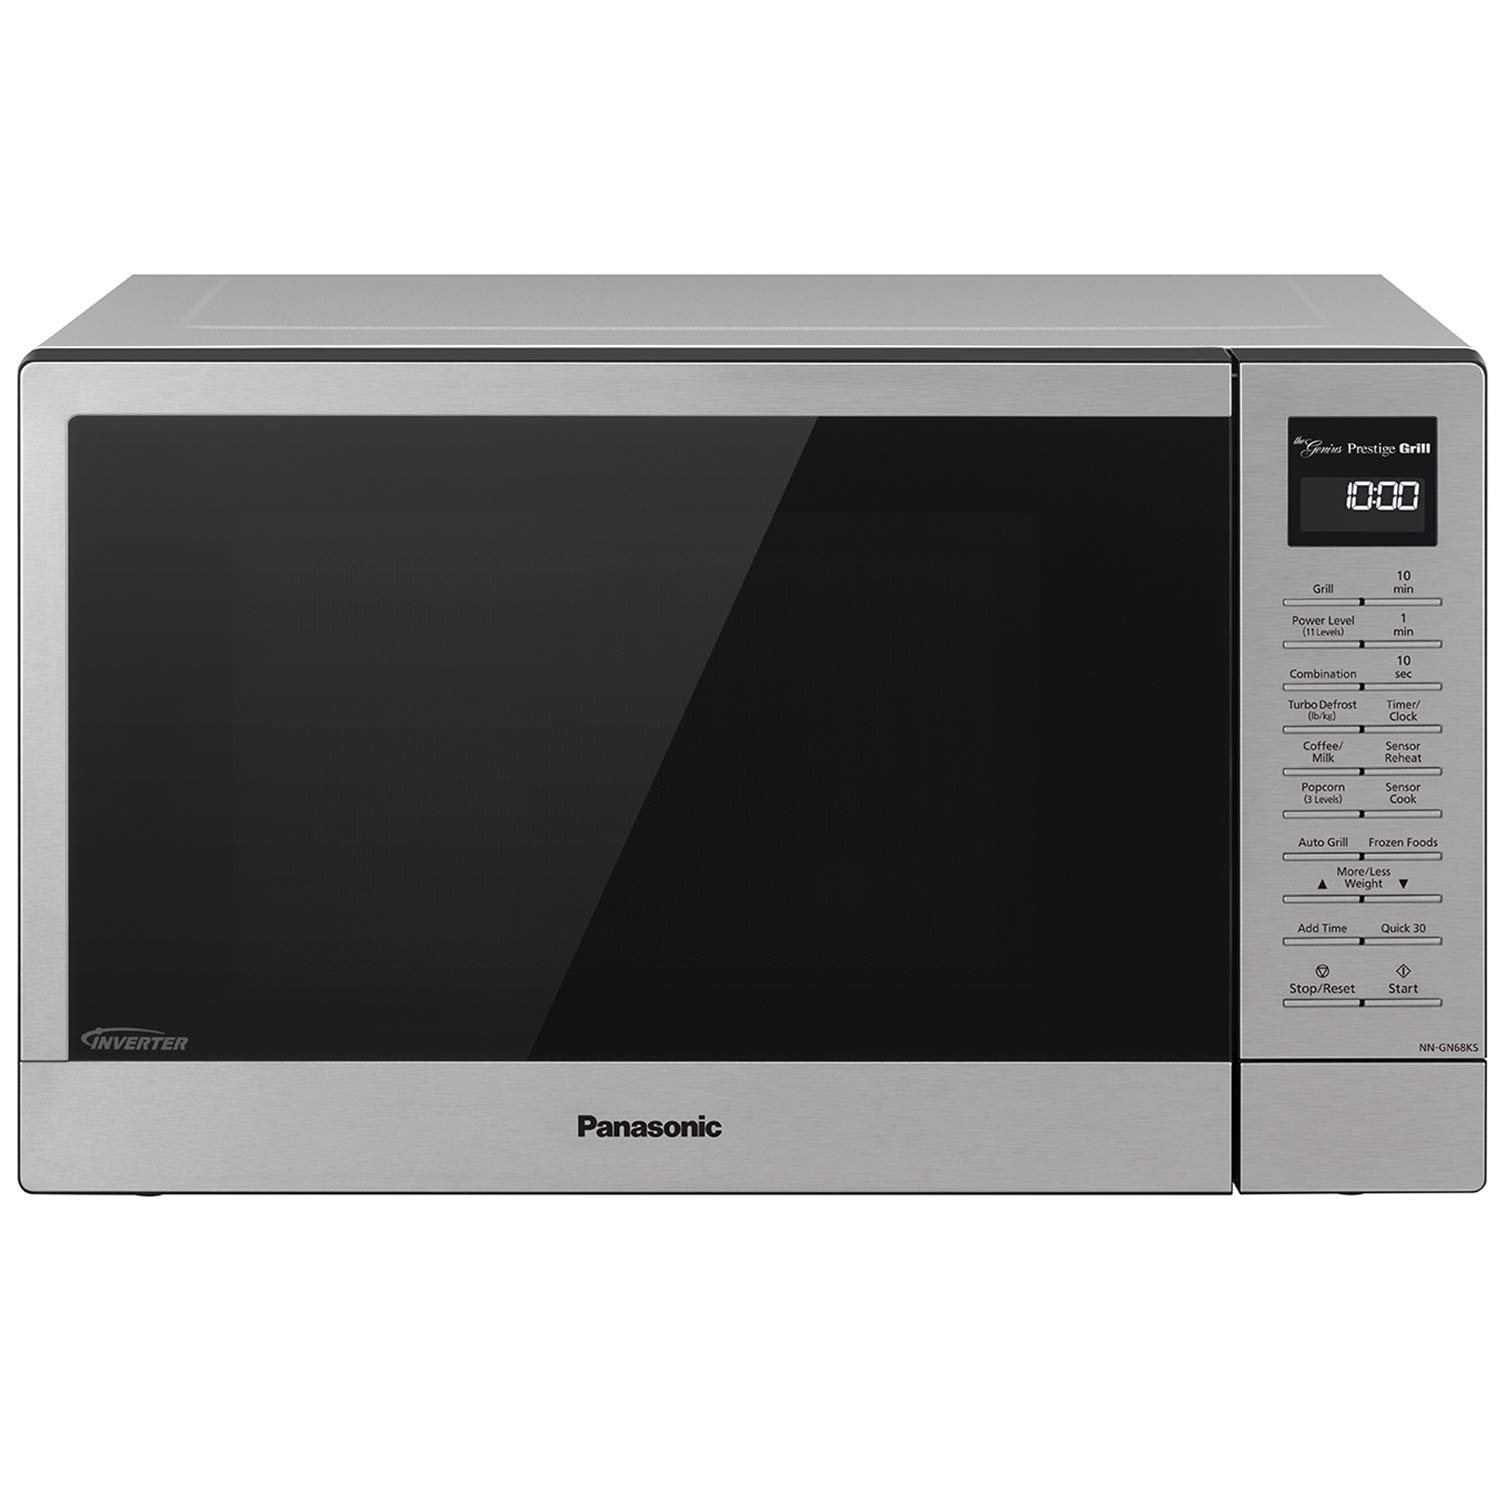 Panasonic Countertop Microwave Oven with FlashXpress Broiler, Genius Sensor Cooking, Popcorn Button and 1000W of Cooking Power - NN-GN68KS - 1.1 cu. ft (Stainless Steel)